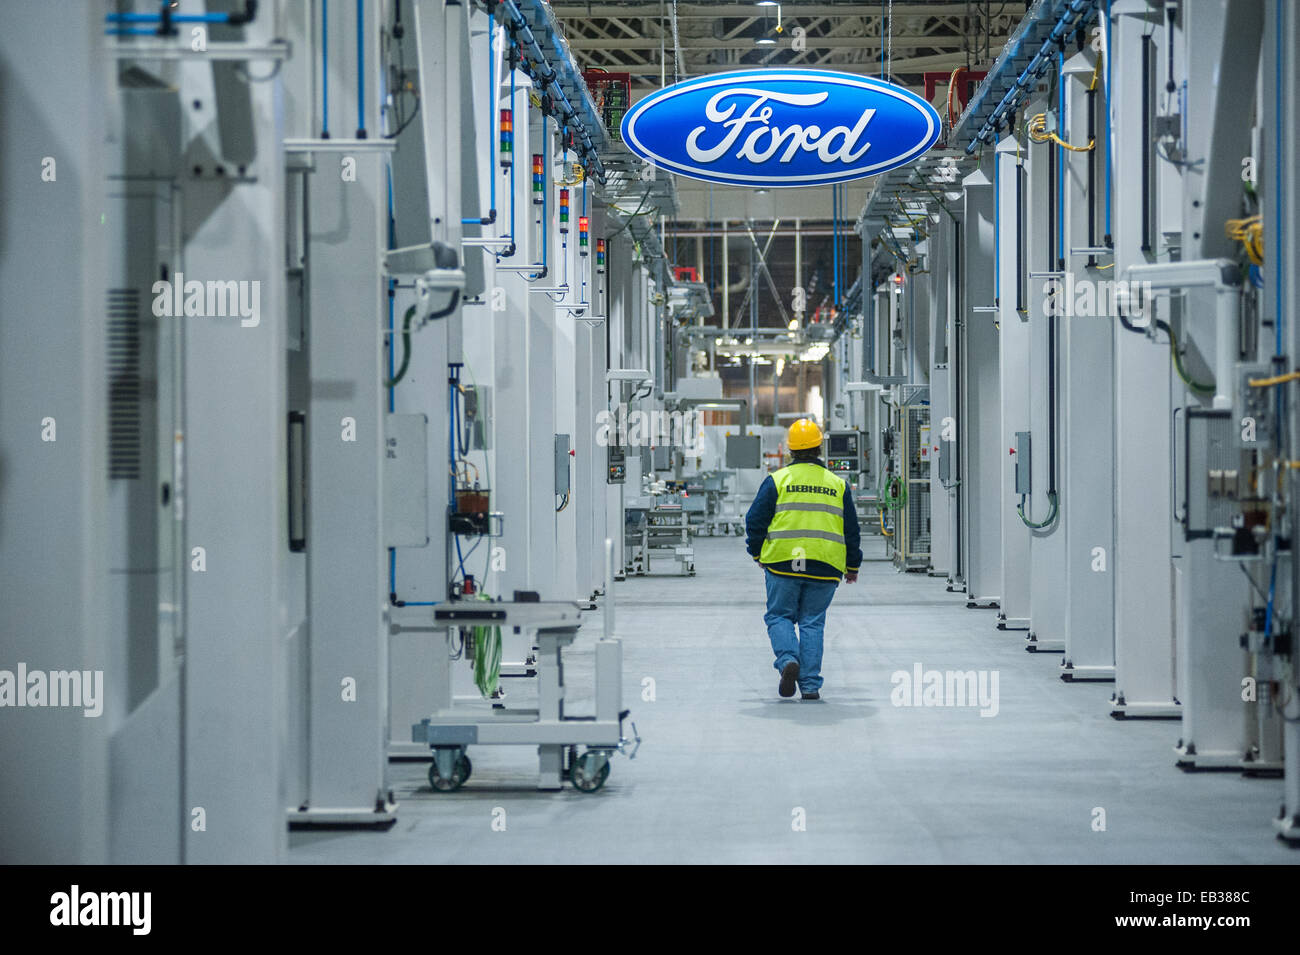 London, UK. 25th November, 2014. An employee of Ford Motor Co Ltd in Dagenham works at the assembly line as The - Stock Image